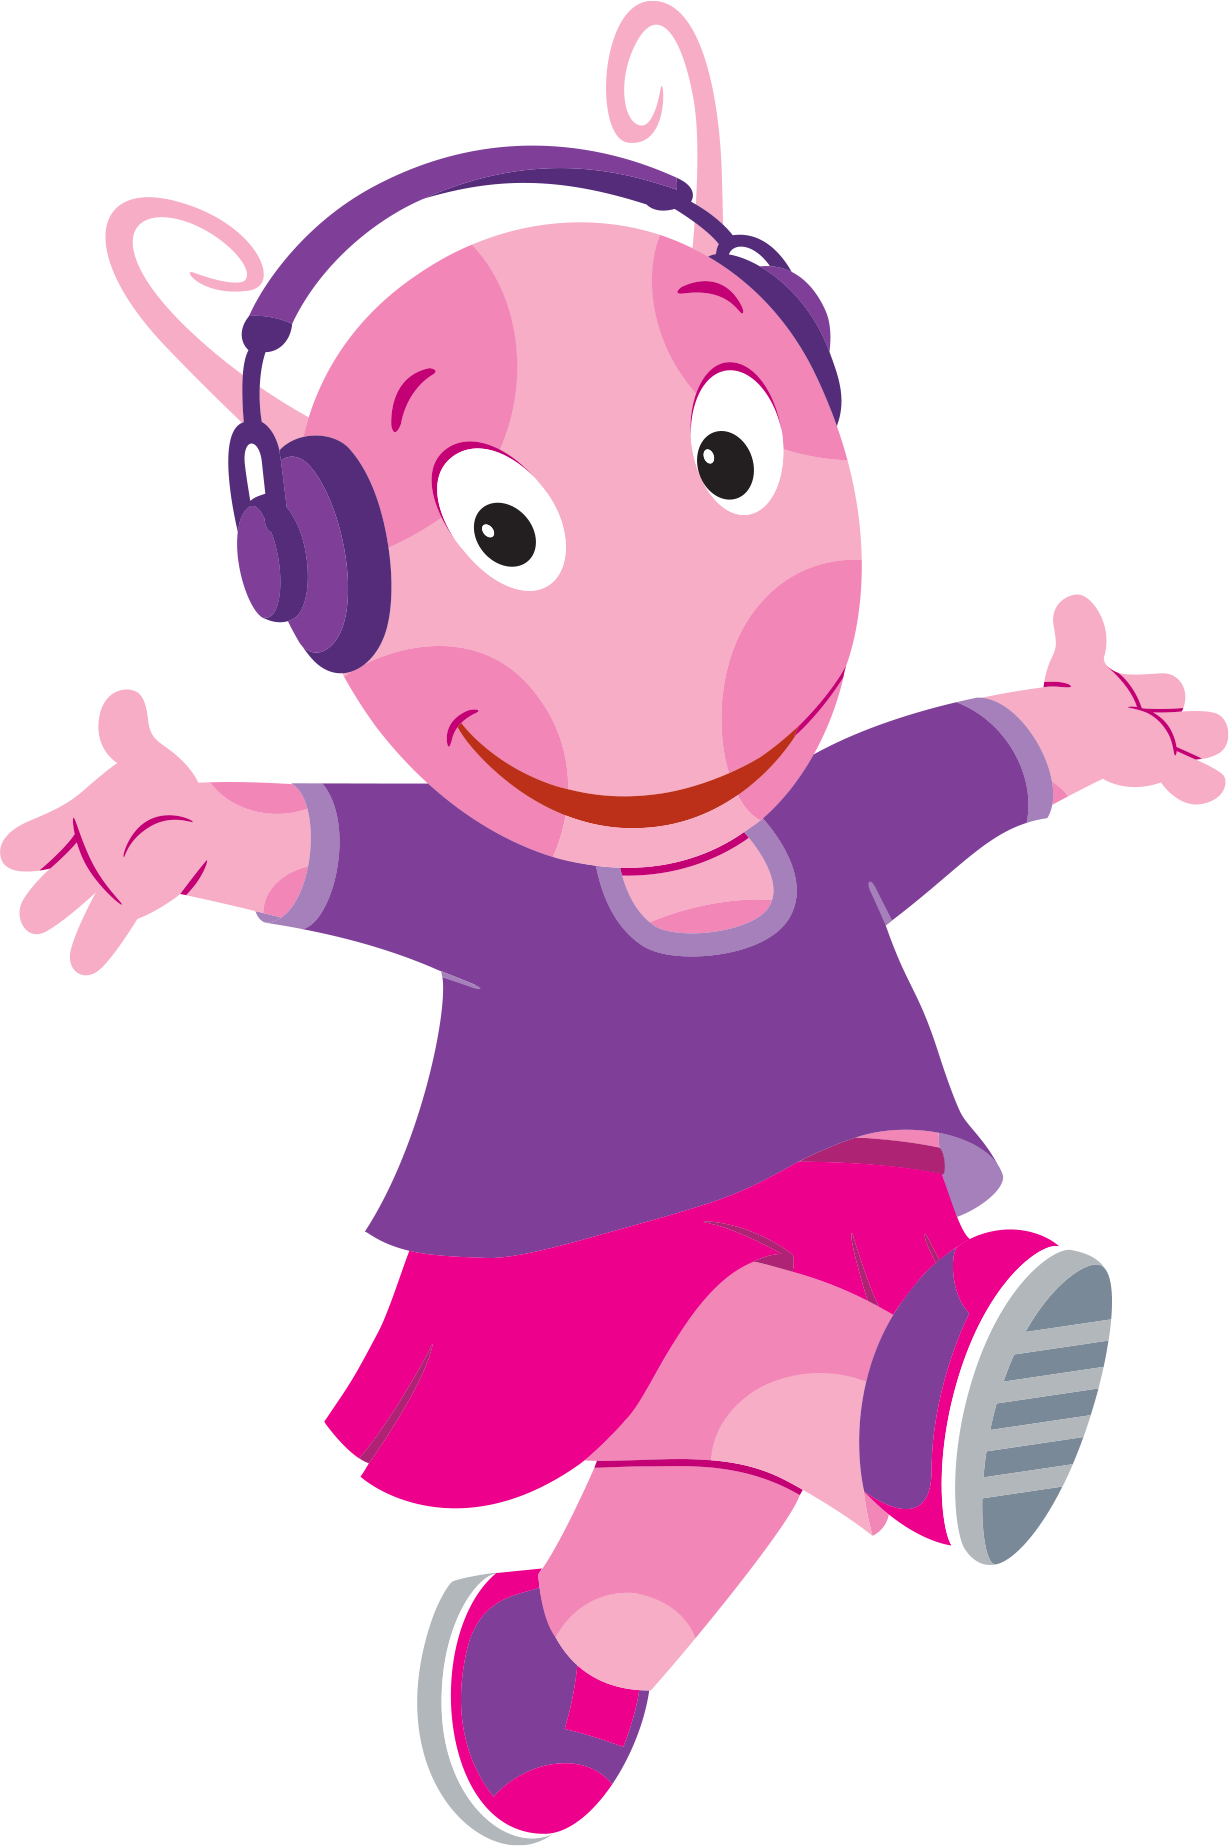 Uncategorized Pink Backyardigan image the backyardigans move to music uniqua 2 png wiki fandom powered by wikia